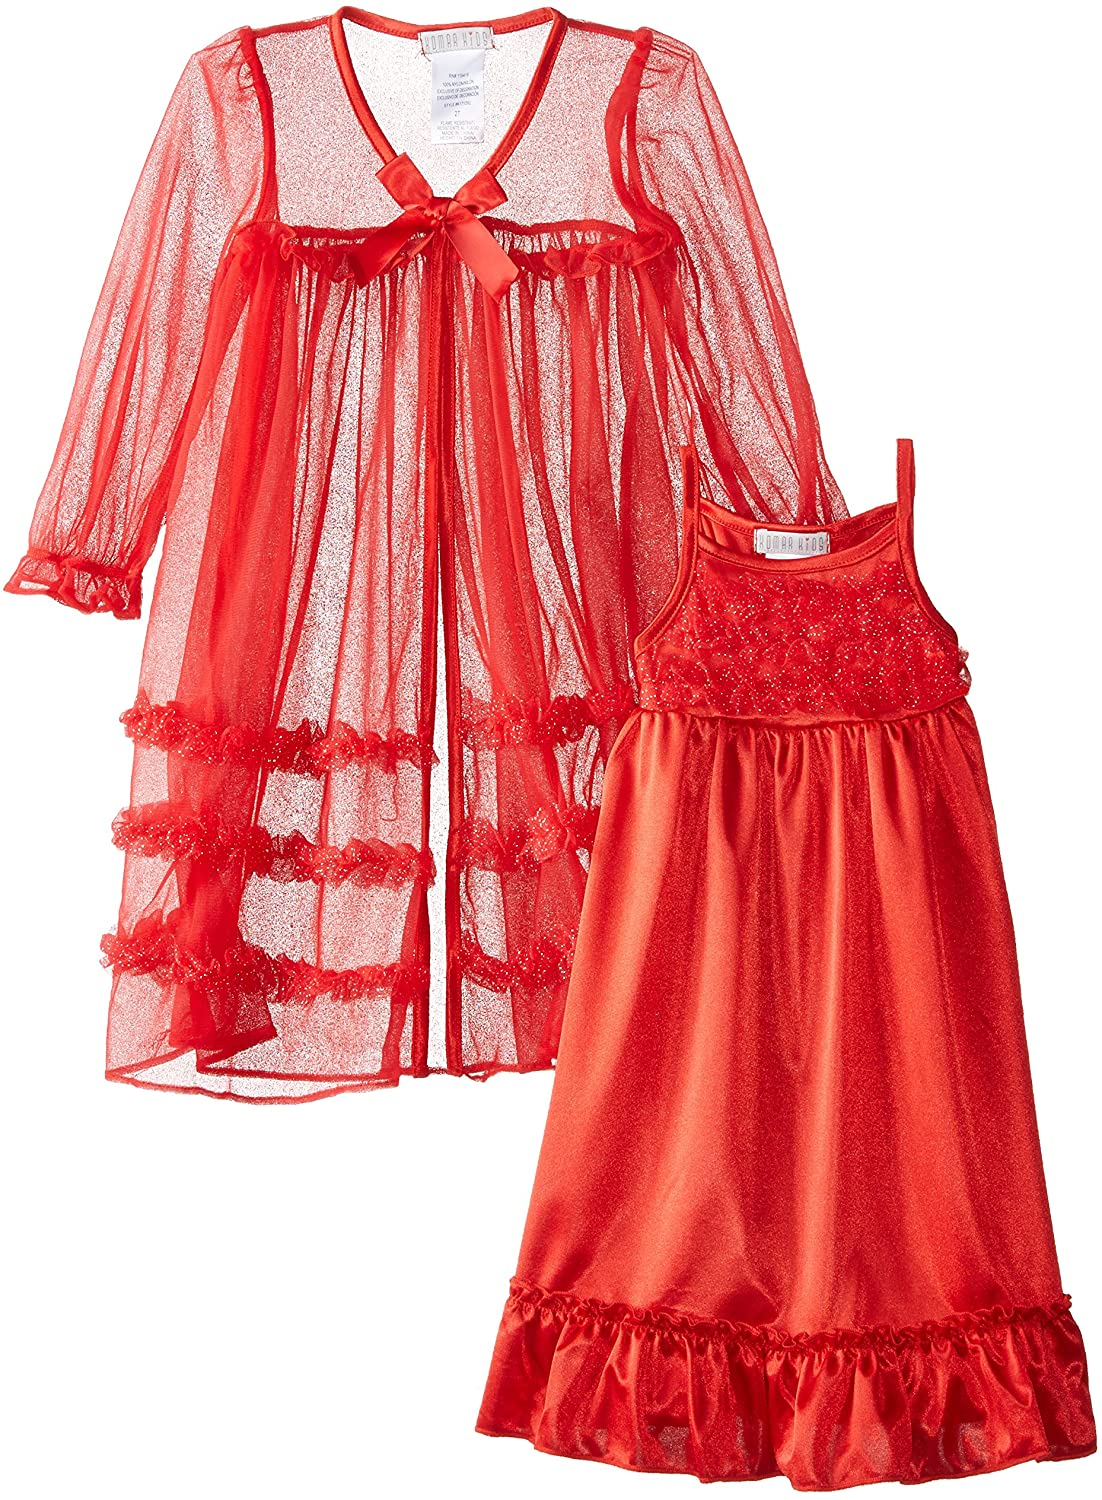 Komar Kids Little Girls' Red Peignoir Gown Set